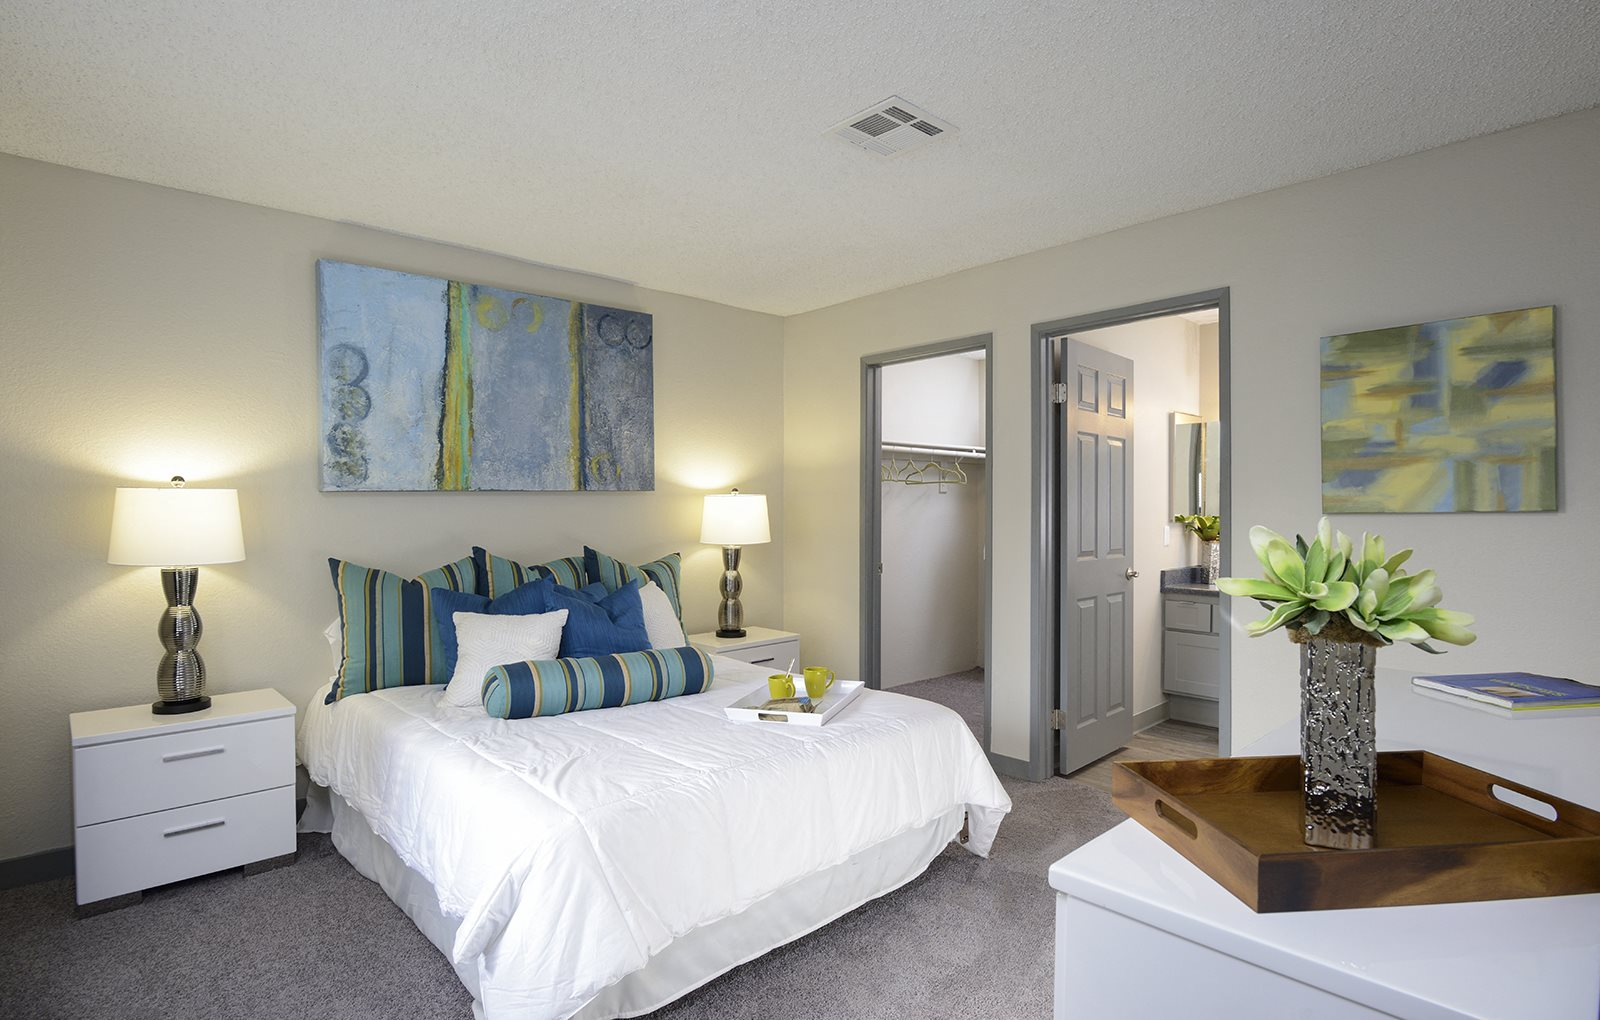 Spacious Bedroom With Adequate Storage, at The Bristol at Sunset, Henderson, 89014